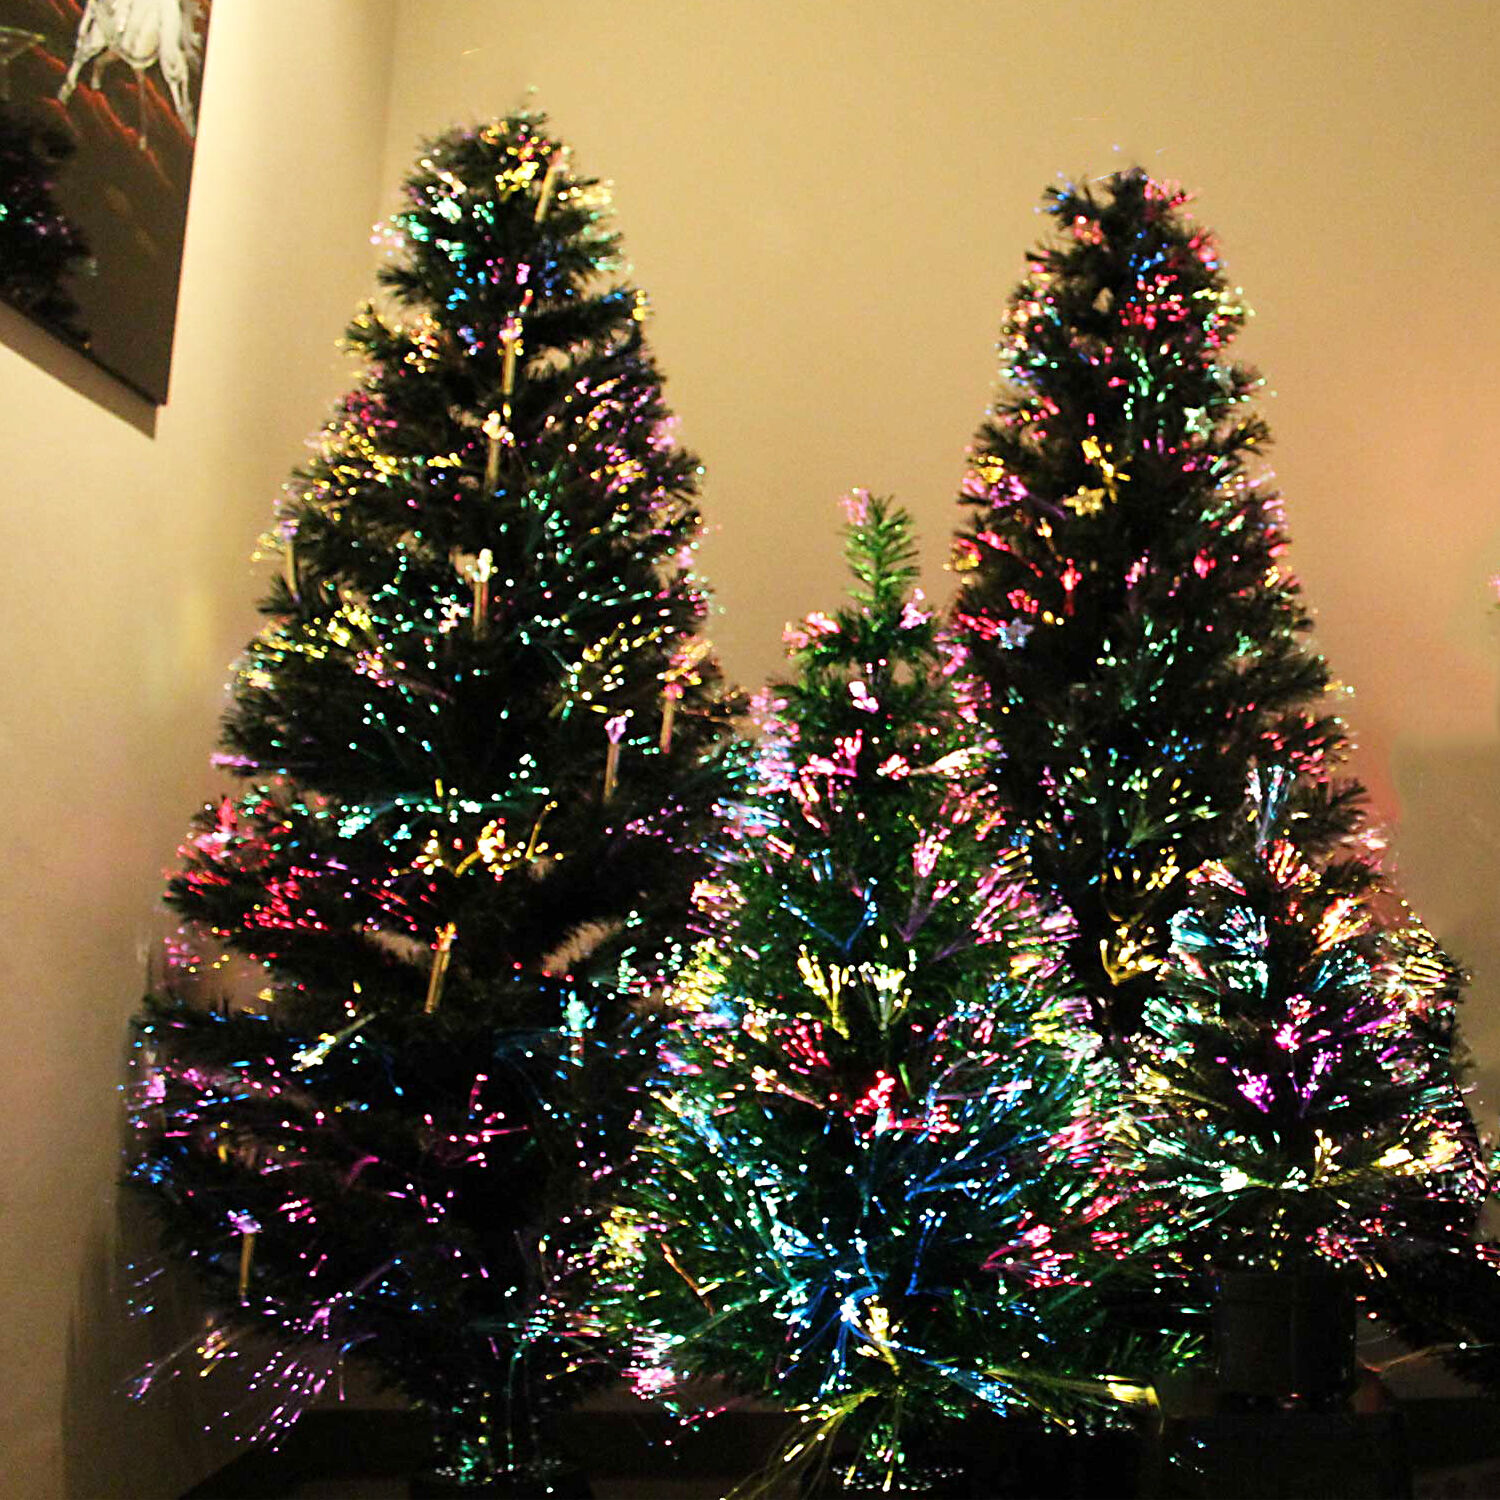 Luxurious Christmas Trees: LUXURY GREEN DELUXE FIBER OPTIC CHRISTMAS TREE MULTICOLOR